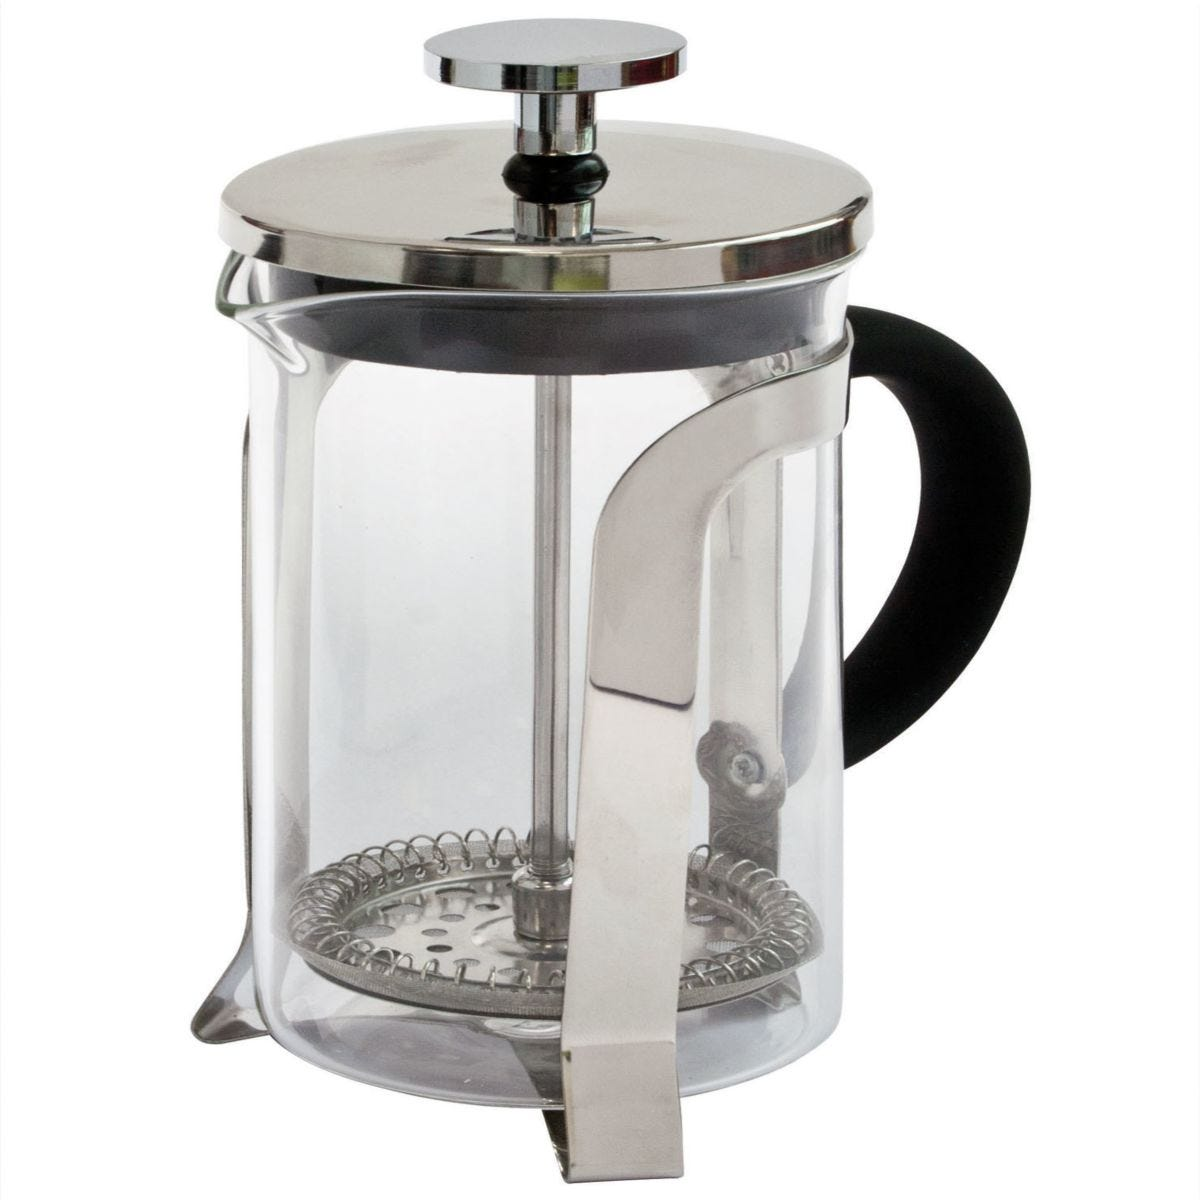 Robert Dyas 3-Cup Stainless Steel Cafetiere